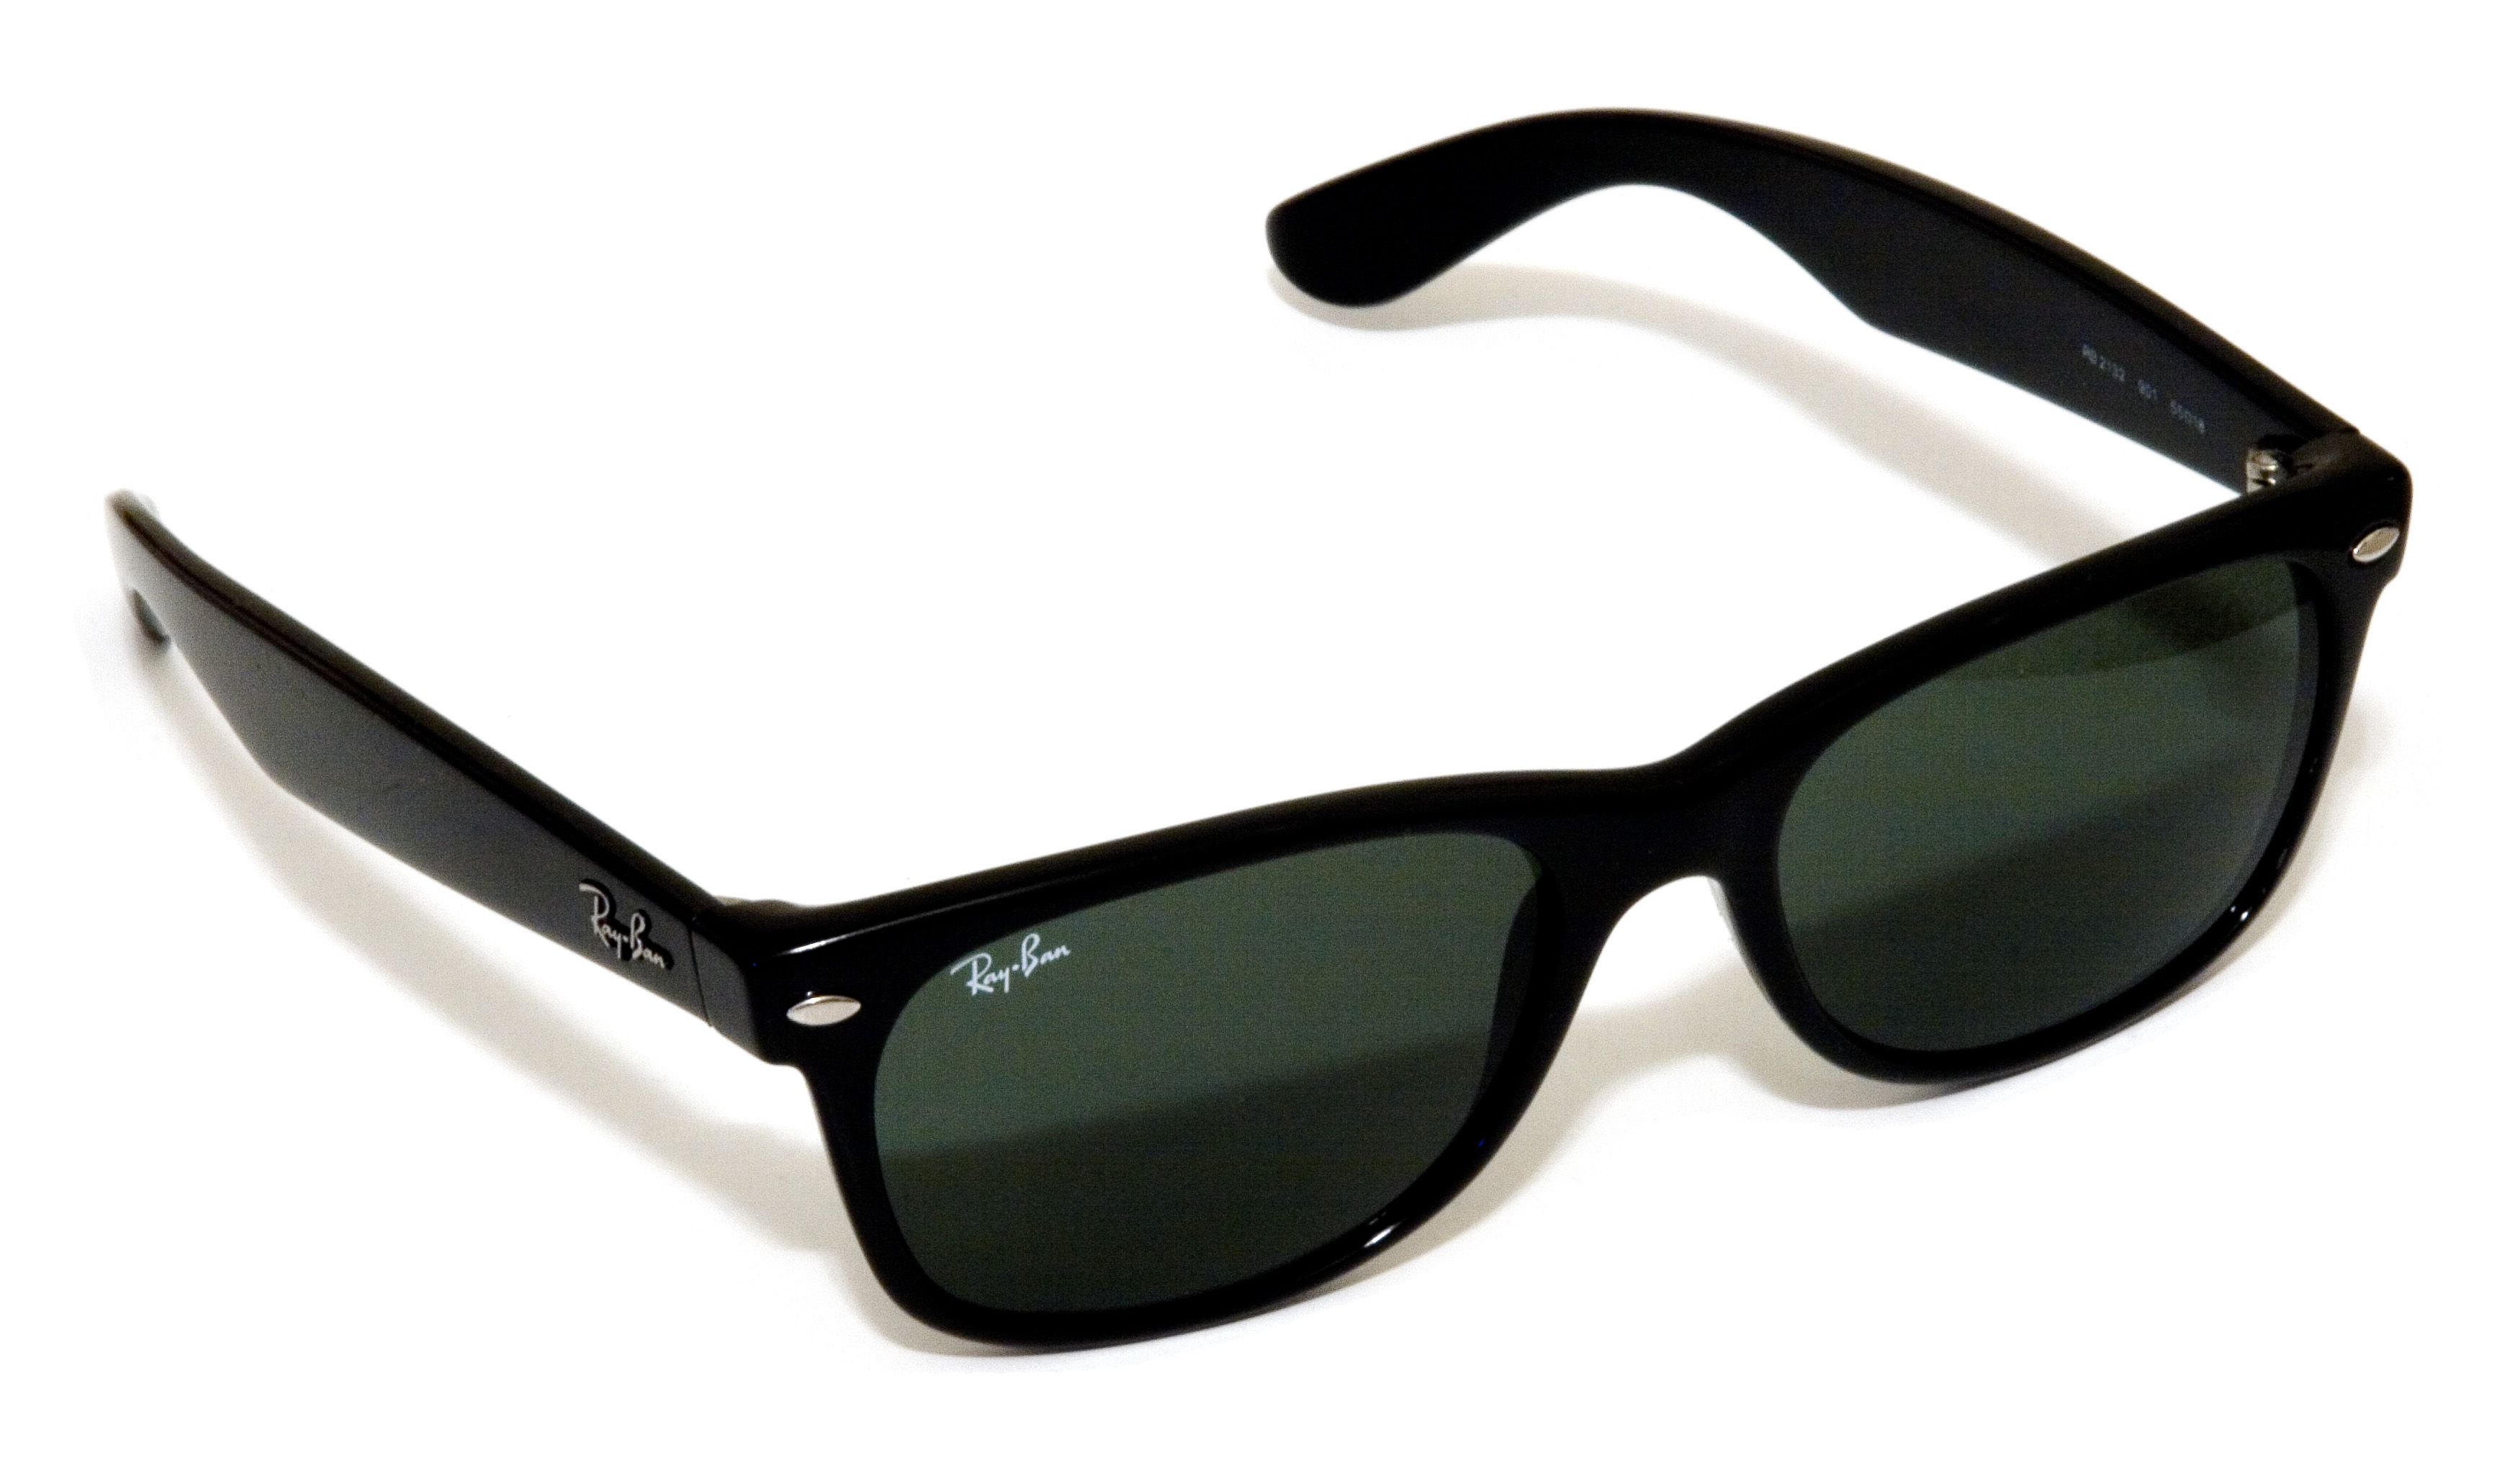 a51722cdfc Ray Bans Outlet Offers Cheap Ray Ban Sunglasses with Top Quality and Best  Price. just what I picture when people speak with you that you don't want .